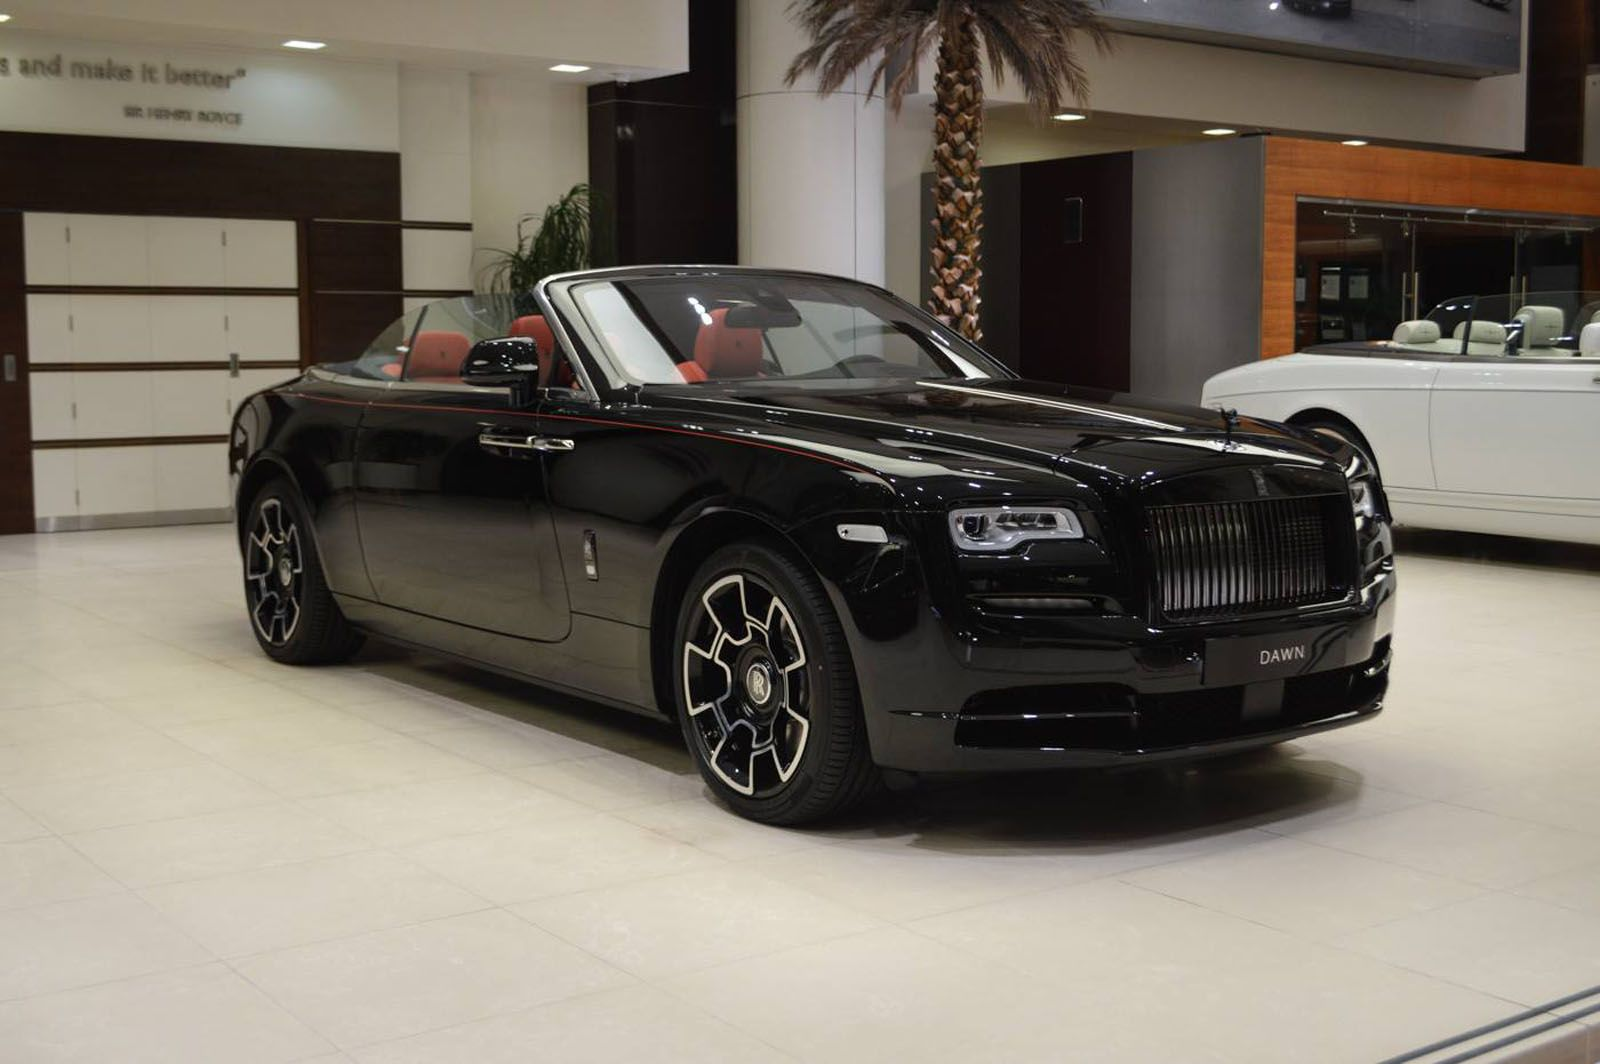 This Rolls-Royce Dawn Wears Its Darkness Like A Black Badge Of Honor | Carscoops